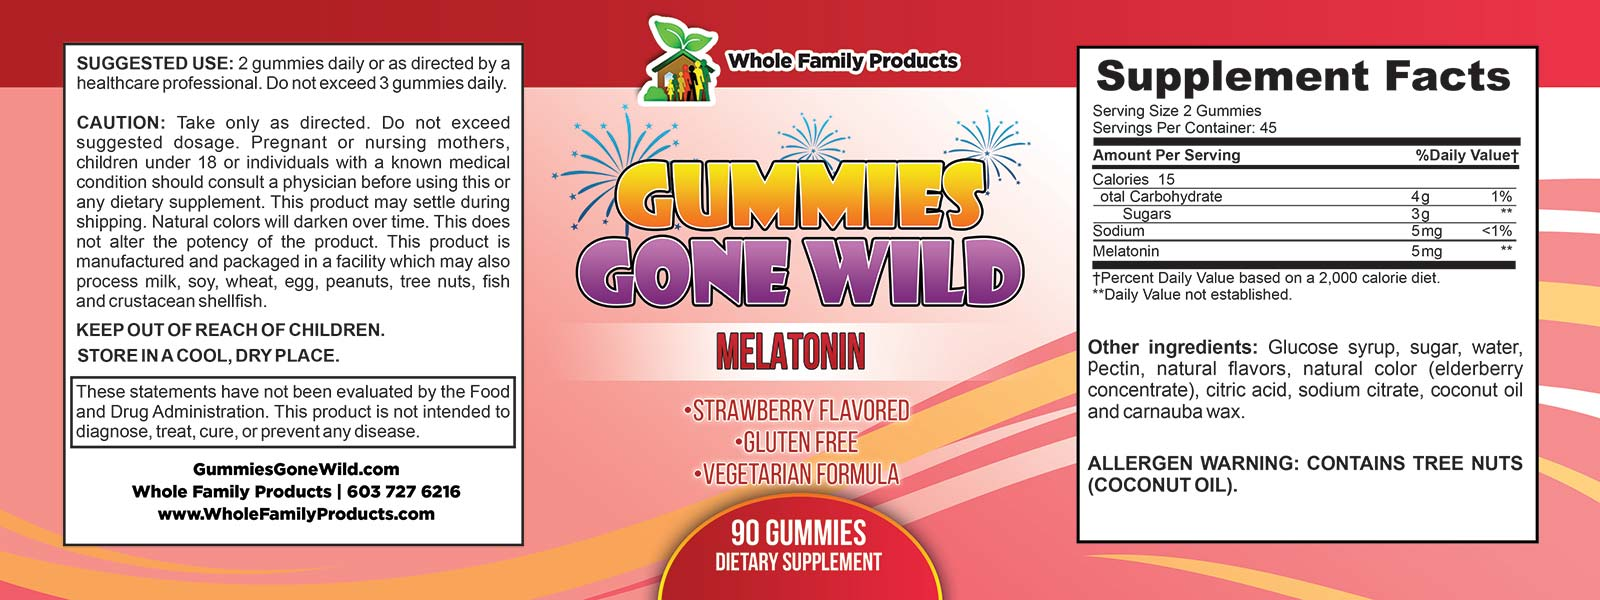 Gummies Gone Wild Melatonin Label